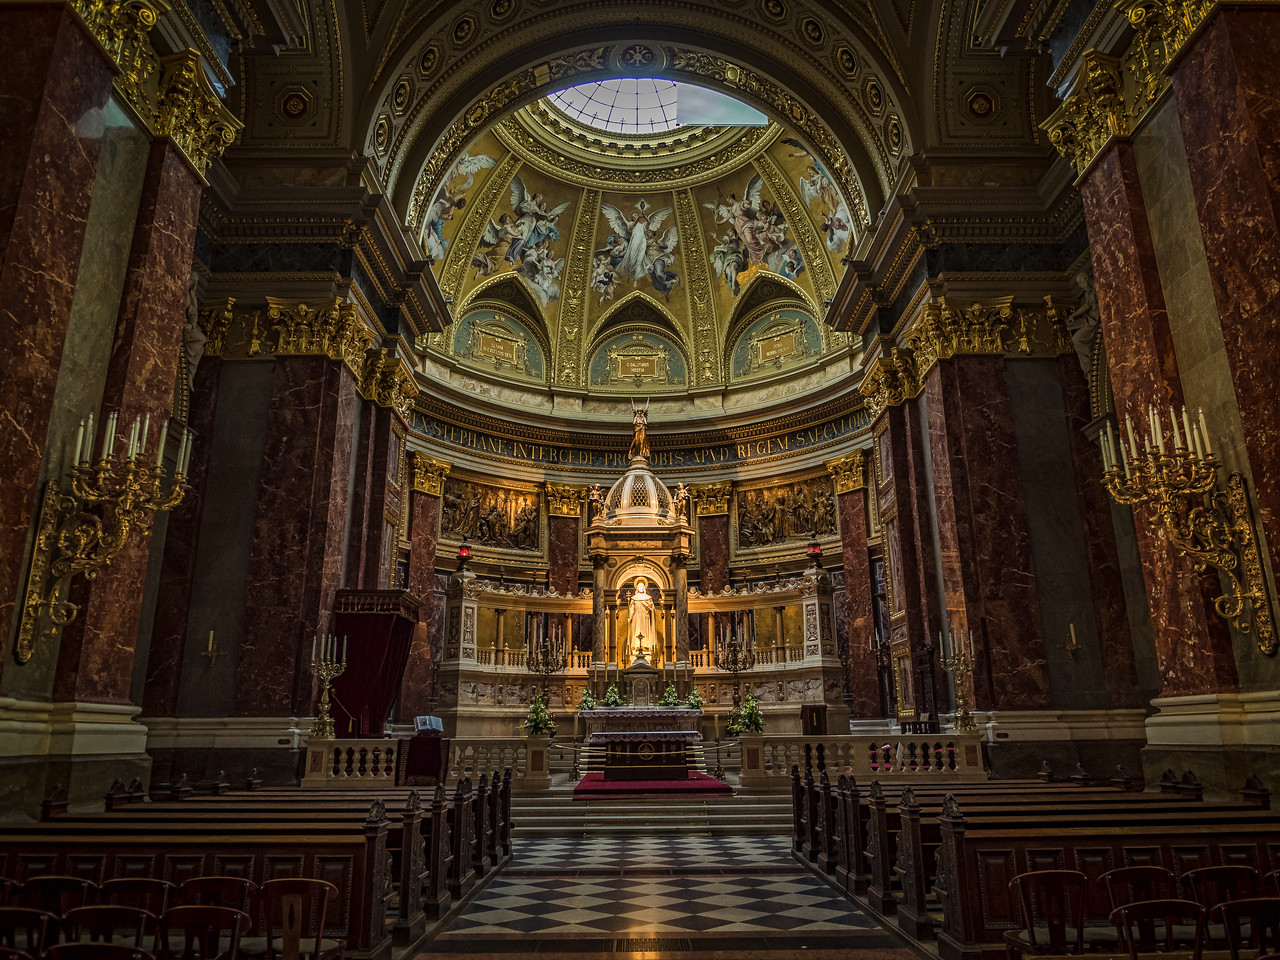 Inside the St. Stephens Basilica, Budapest, Hungary